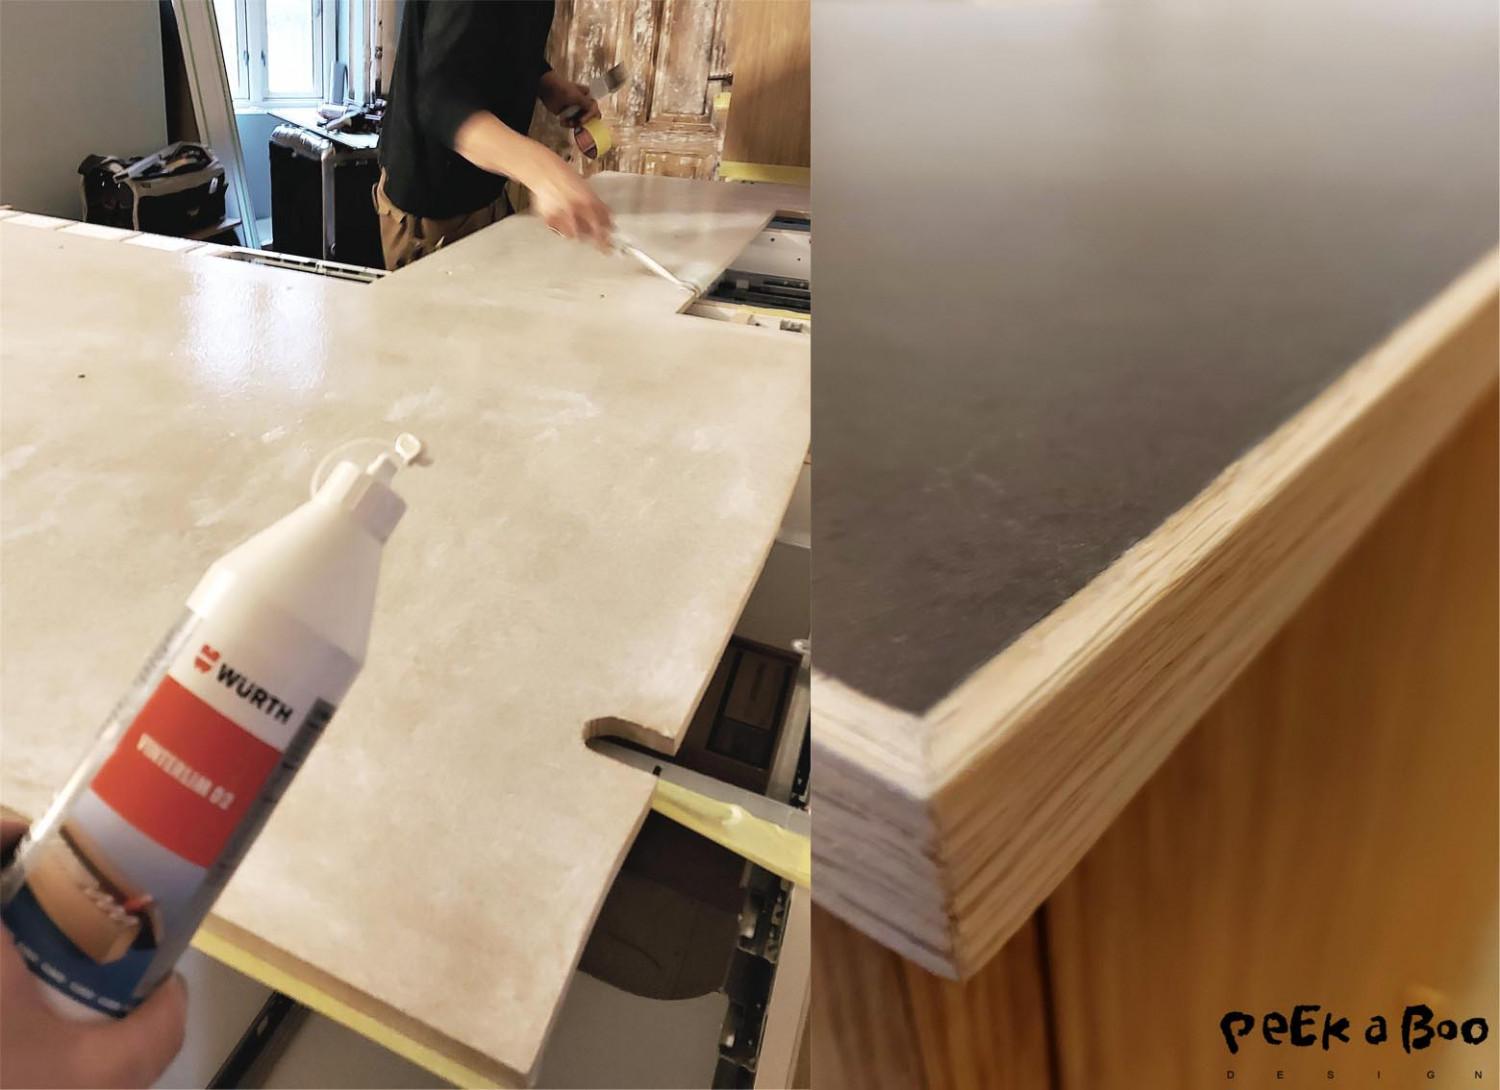 The countertop is in the same colour linoleum as the floor, but the version ment for furnitures.